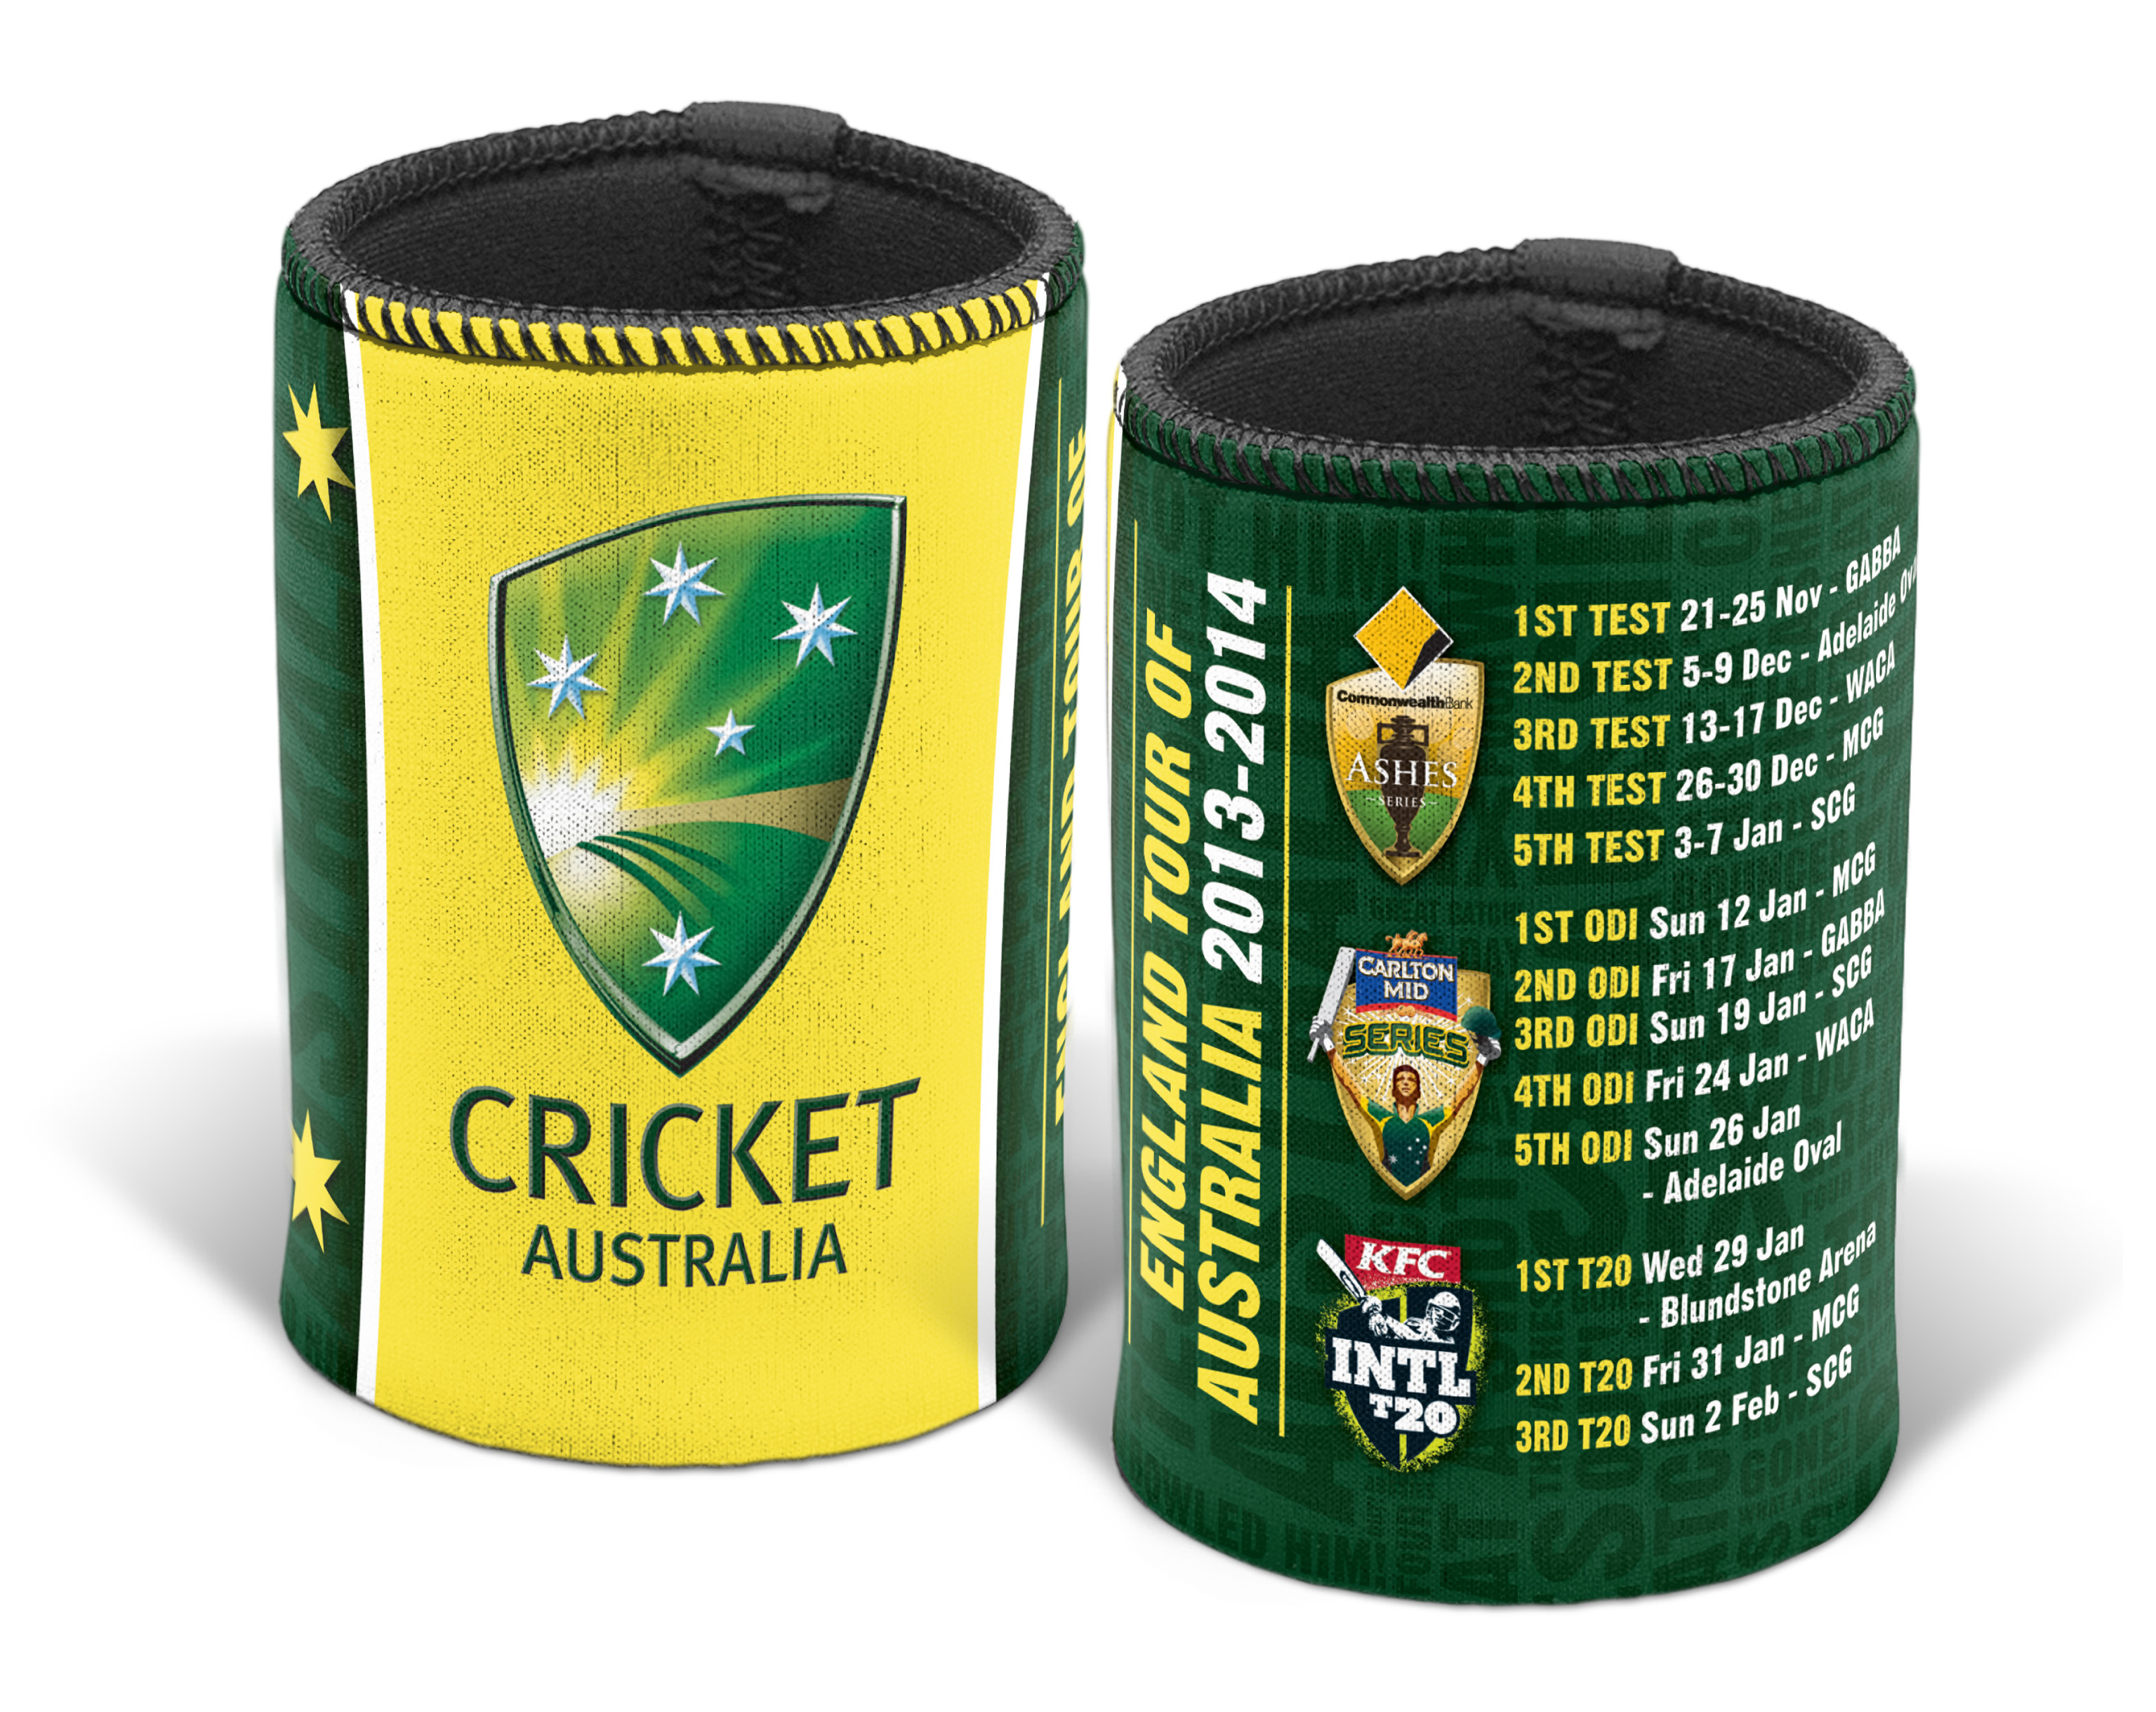 Cricket-Australia-Test-Cricket-2013-Fixture-Stubby-Holder-Can-Cooler